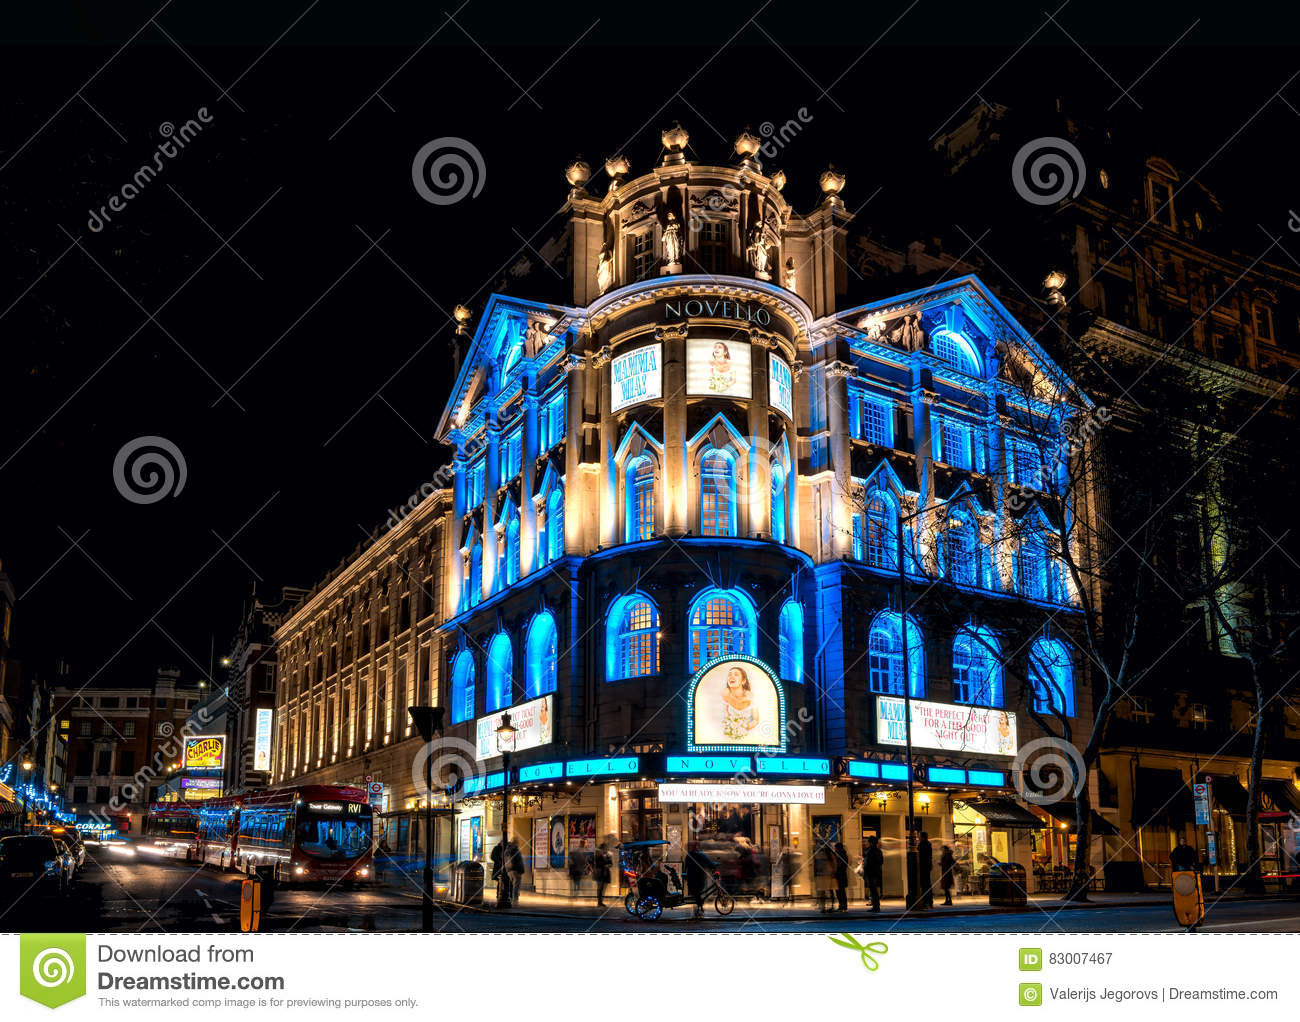 London Christmas Lights At Novello Theatre Editorial Photography